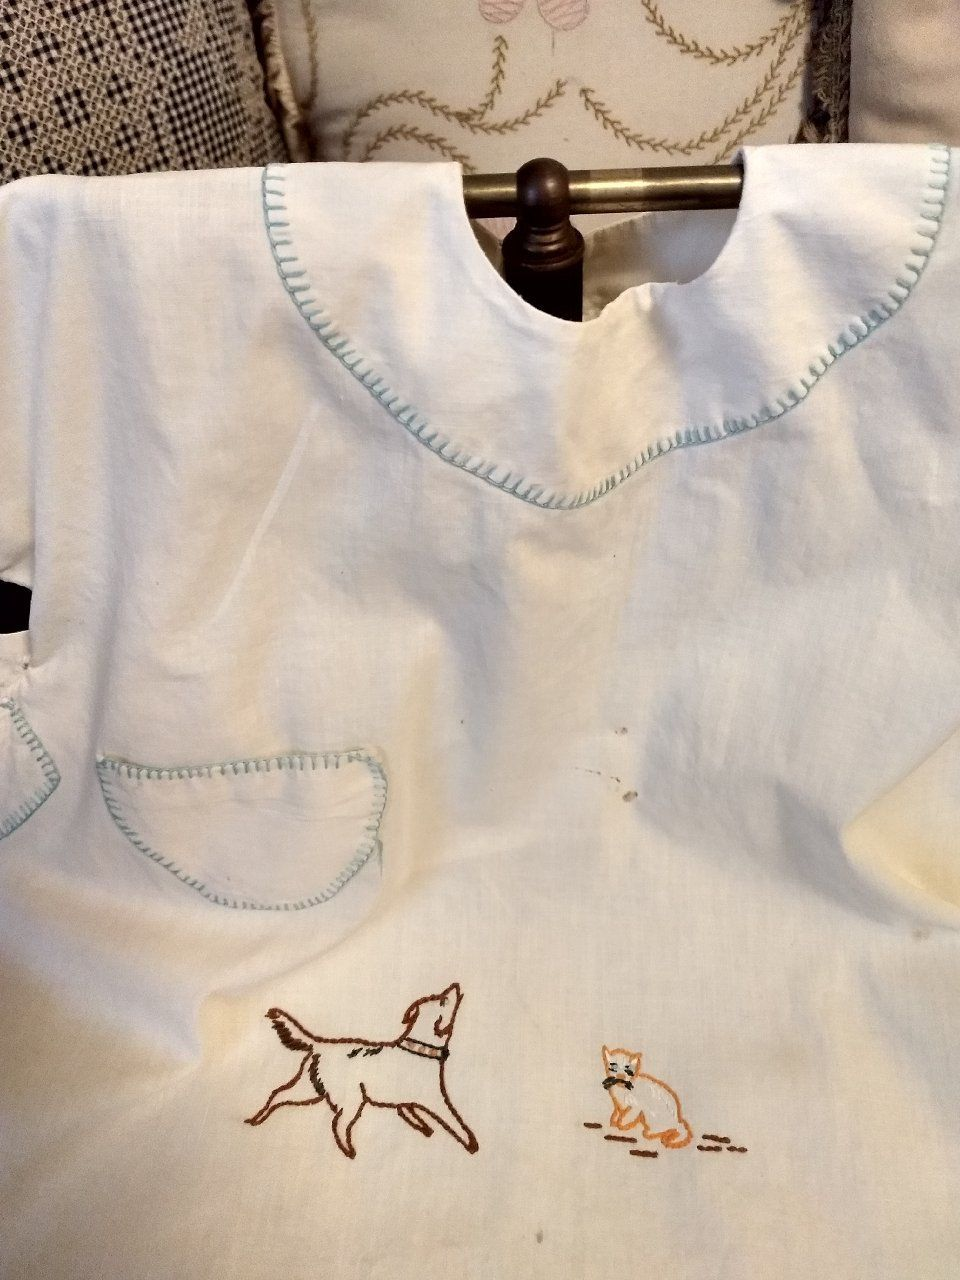 Antique Baby Jacket Vintage Embroidered White Shirt Top 1920/'s 1930/'s ADORABLE Infant Boys Girls Clothing Unisex